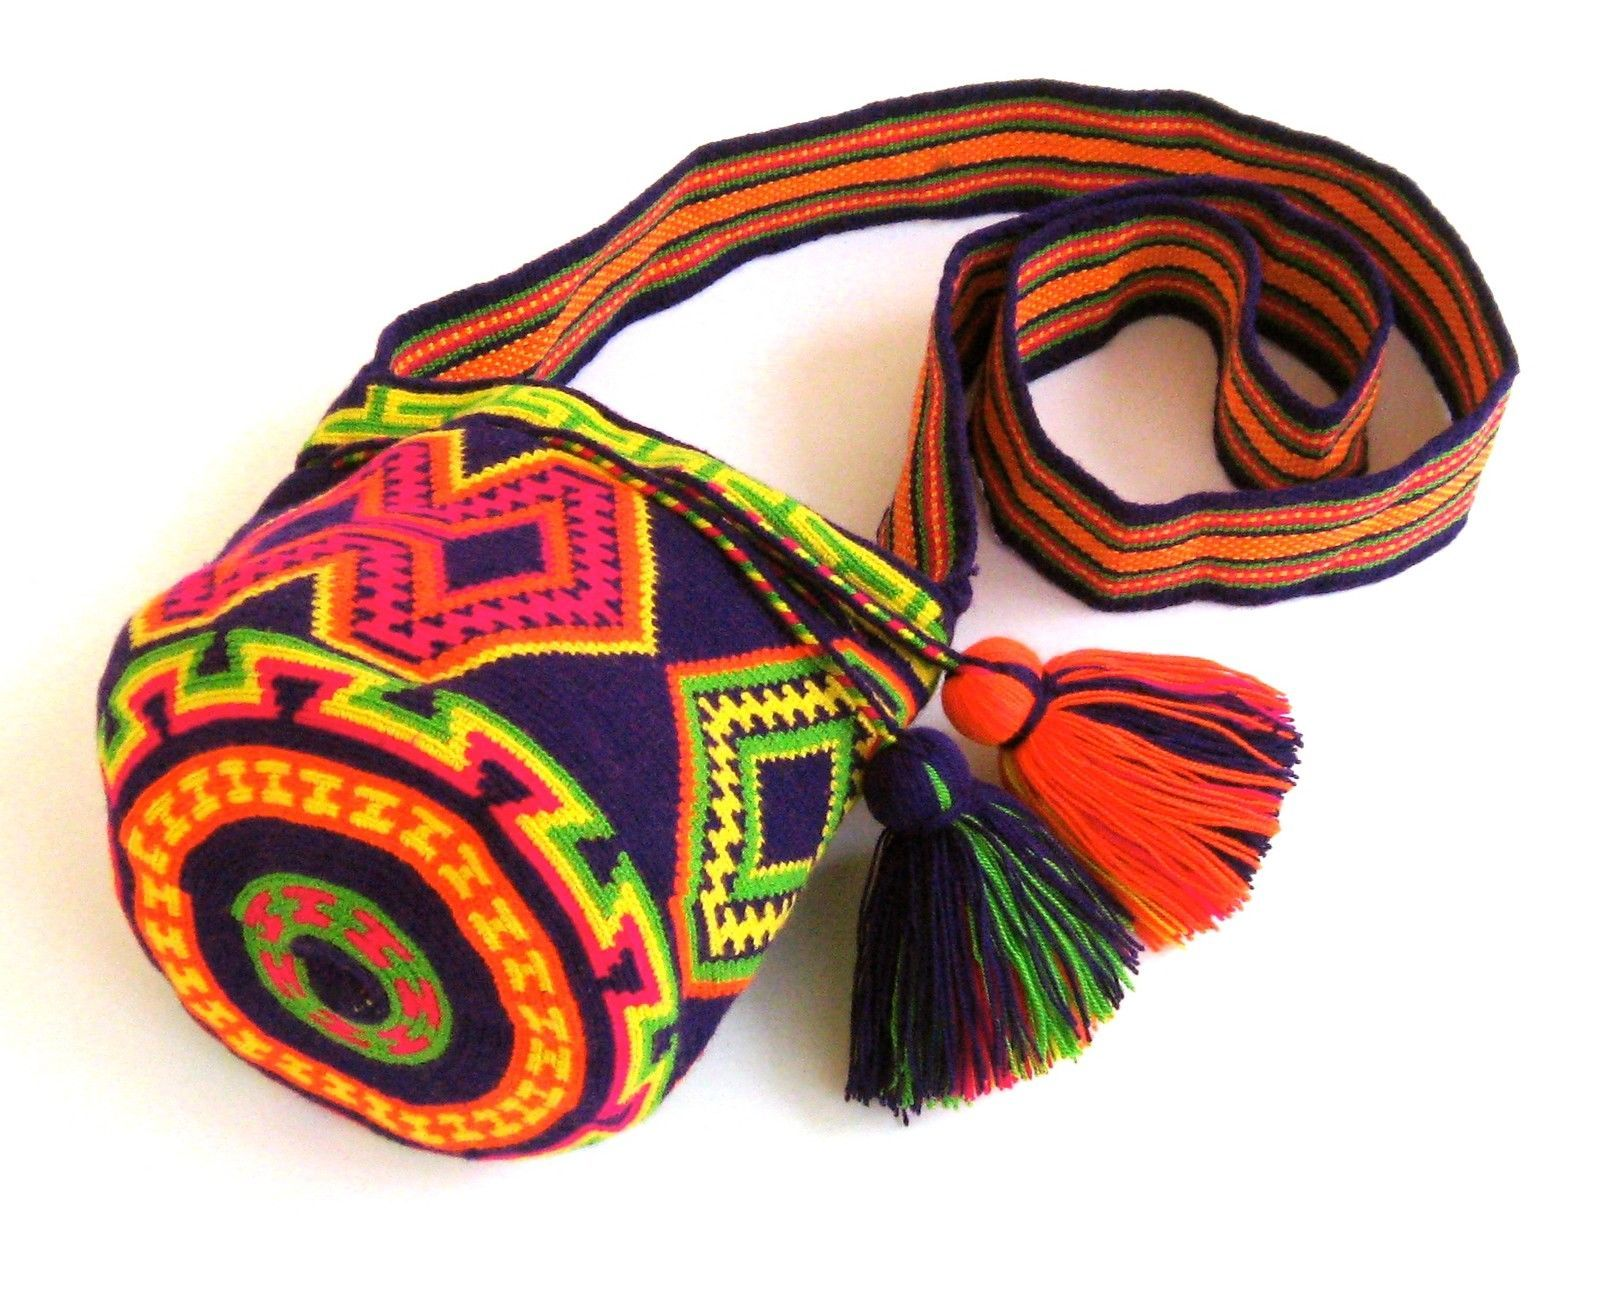 mochila wayuu small size bag tight 1 2 stitch crochet handmade ebay 64 00 [ 1600 x 1304 Pixel ]